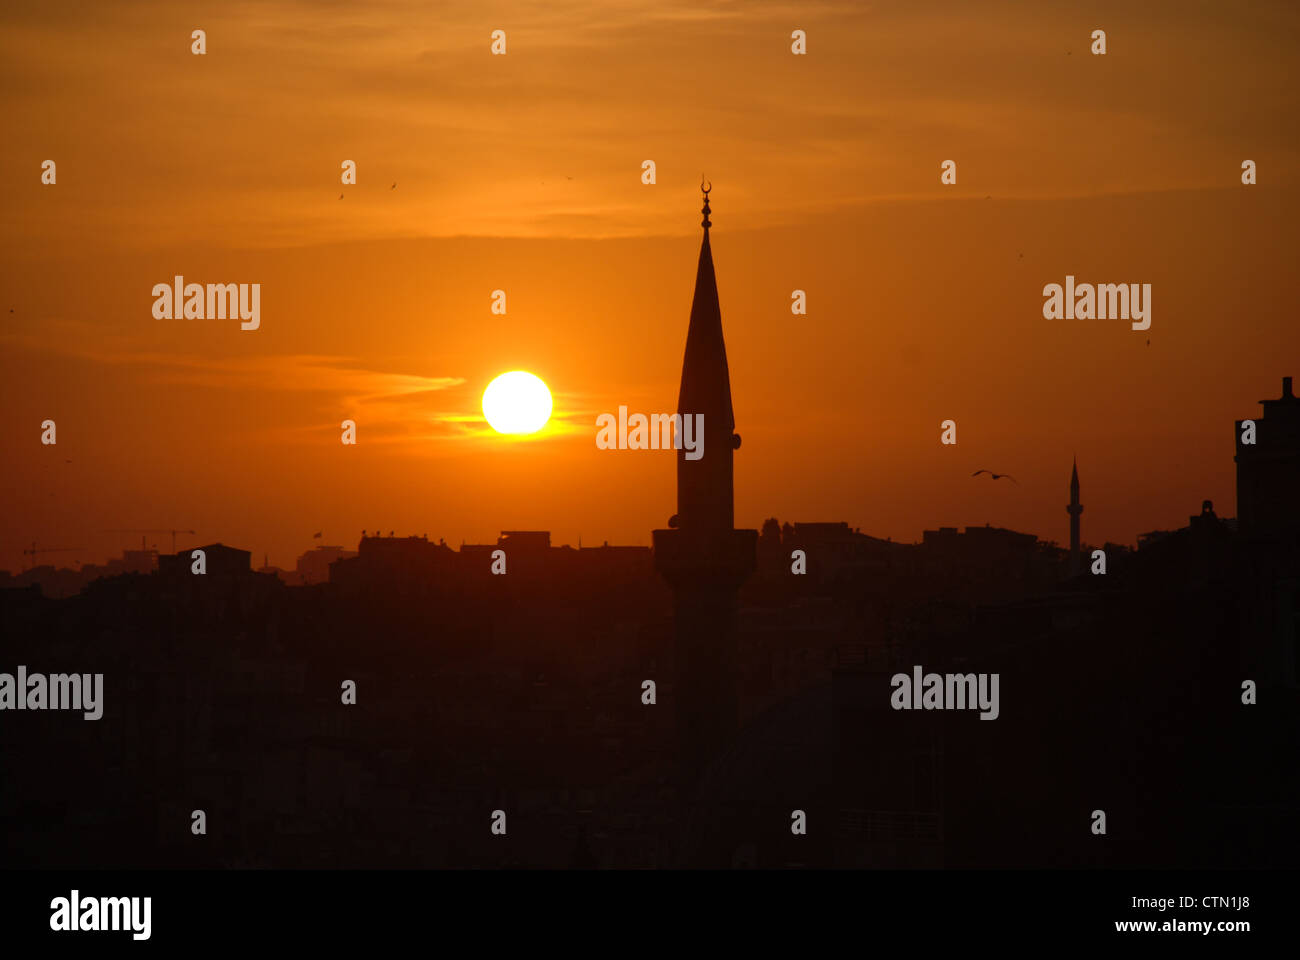 Istanbul at sunset. Picture by: Adam Alexander/Alamy - Stock Image